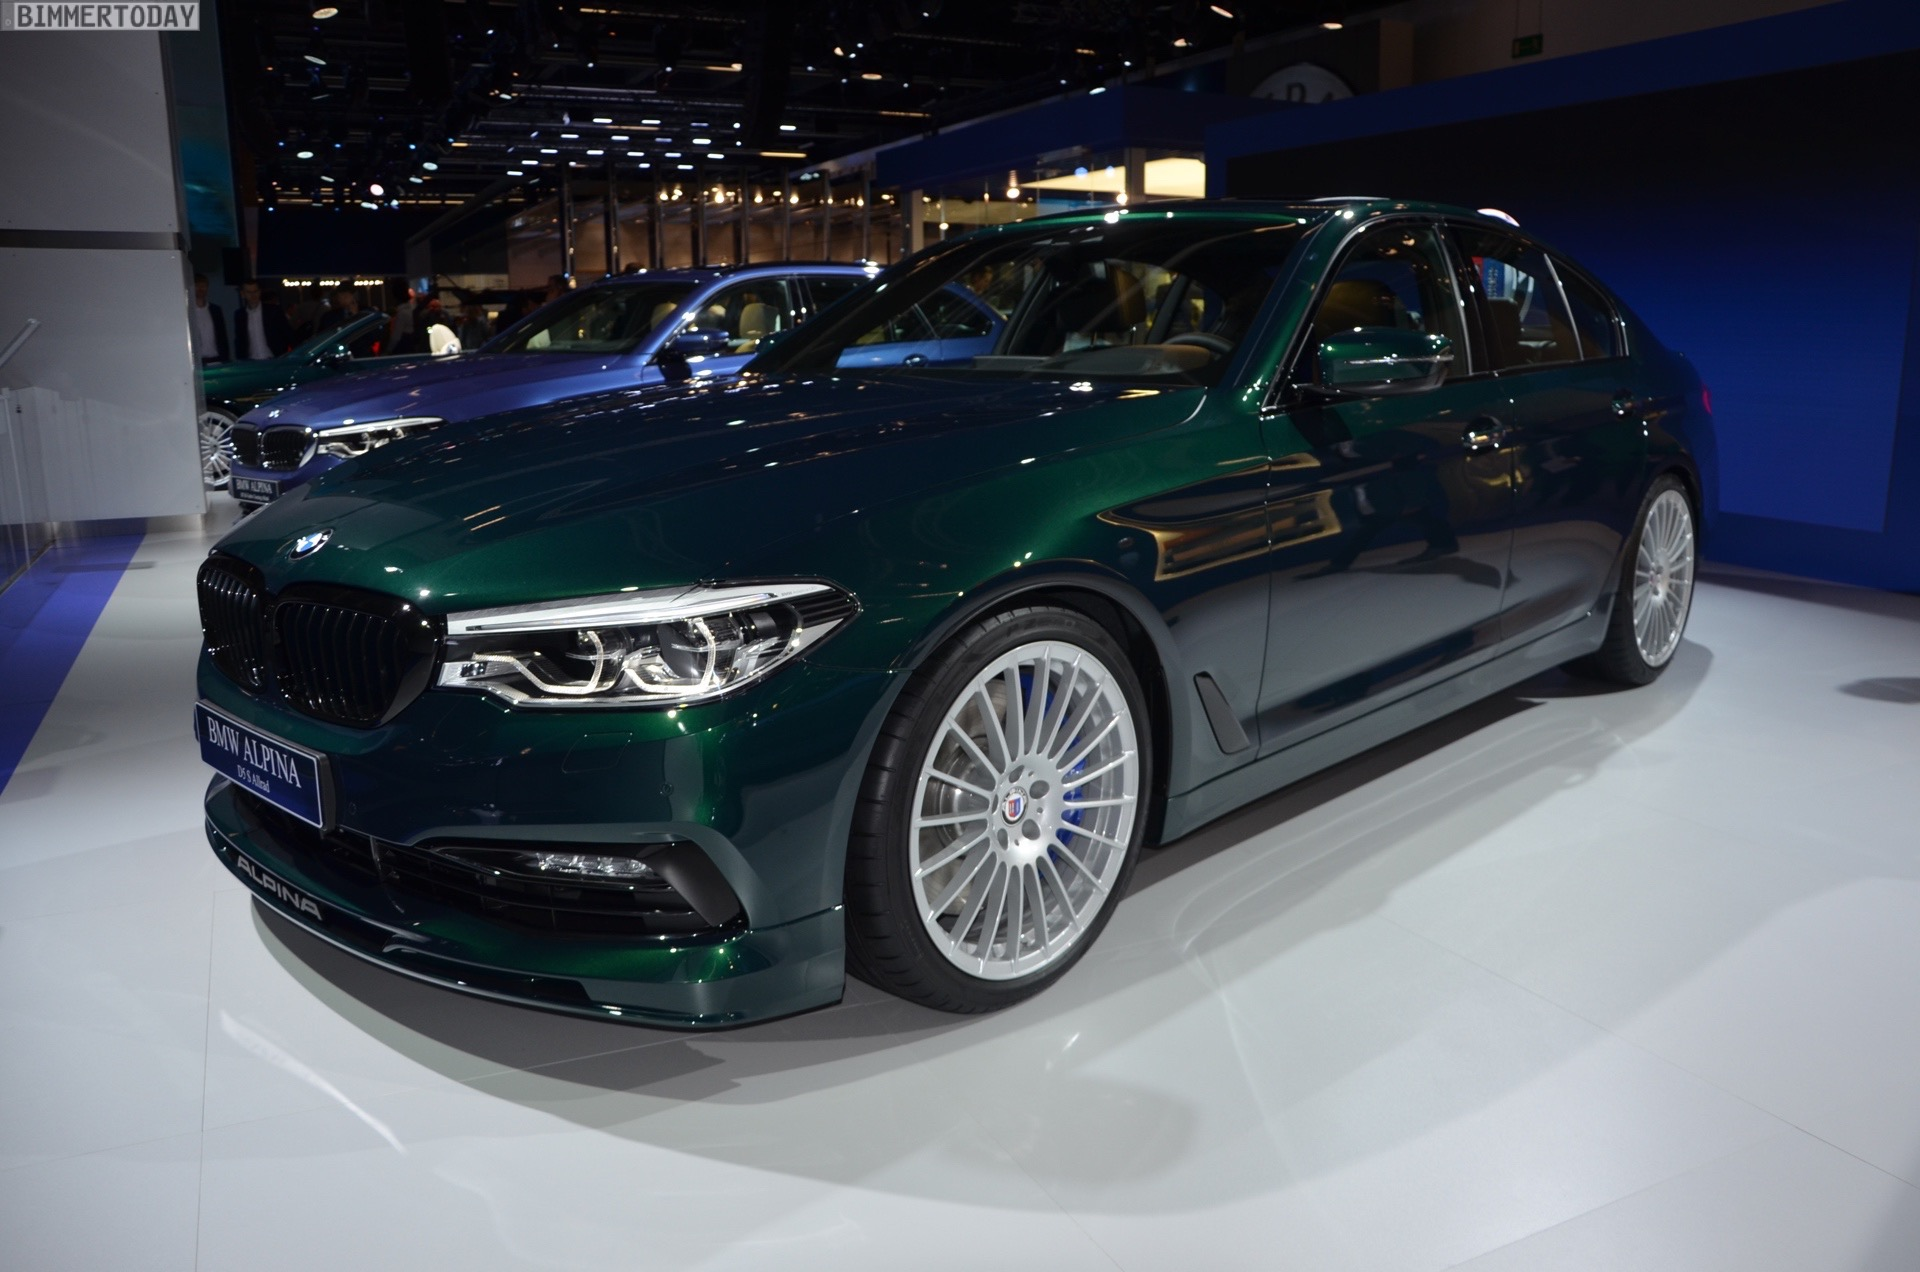 Iaa 2017 Bmw Alpina D5 S G30 Mit 388 Ps Triturbo Live Fotos